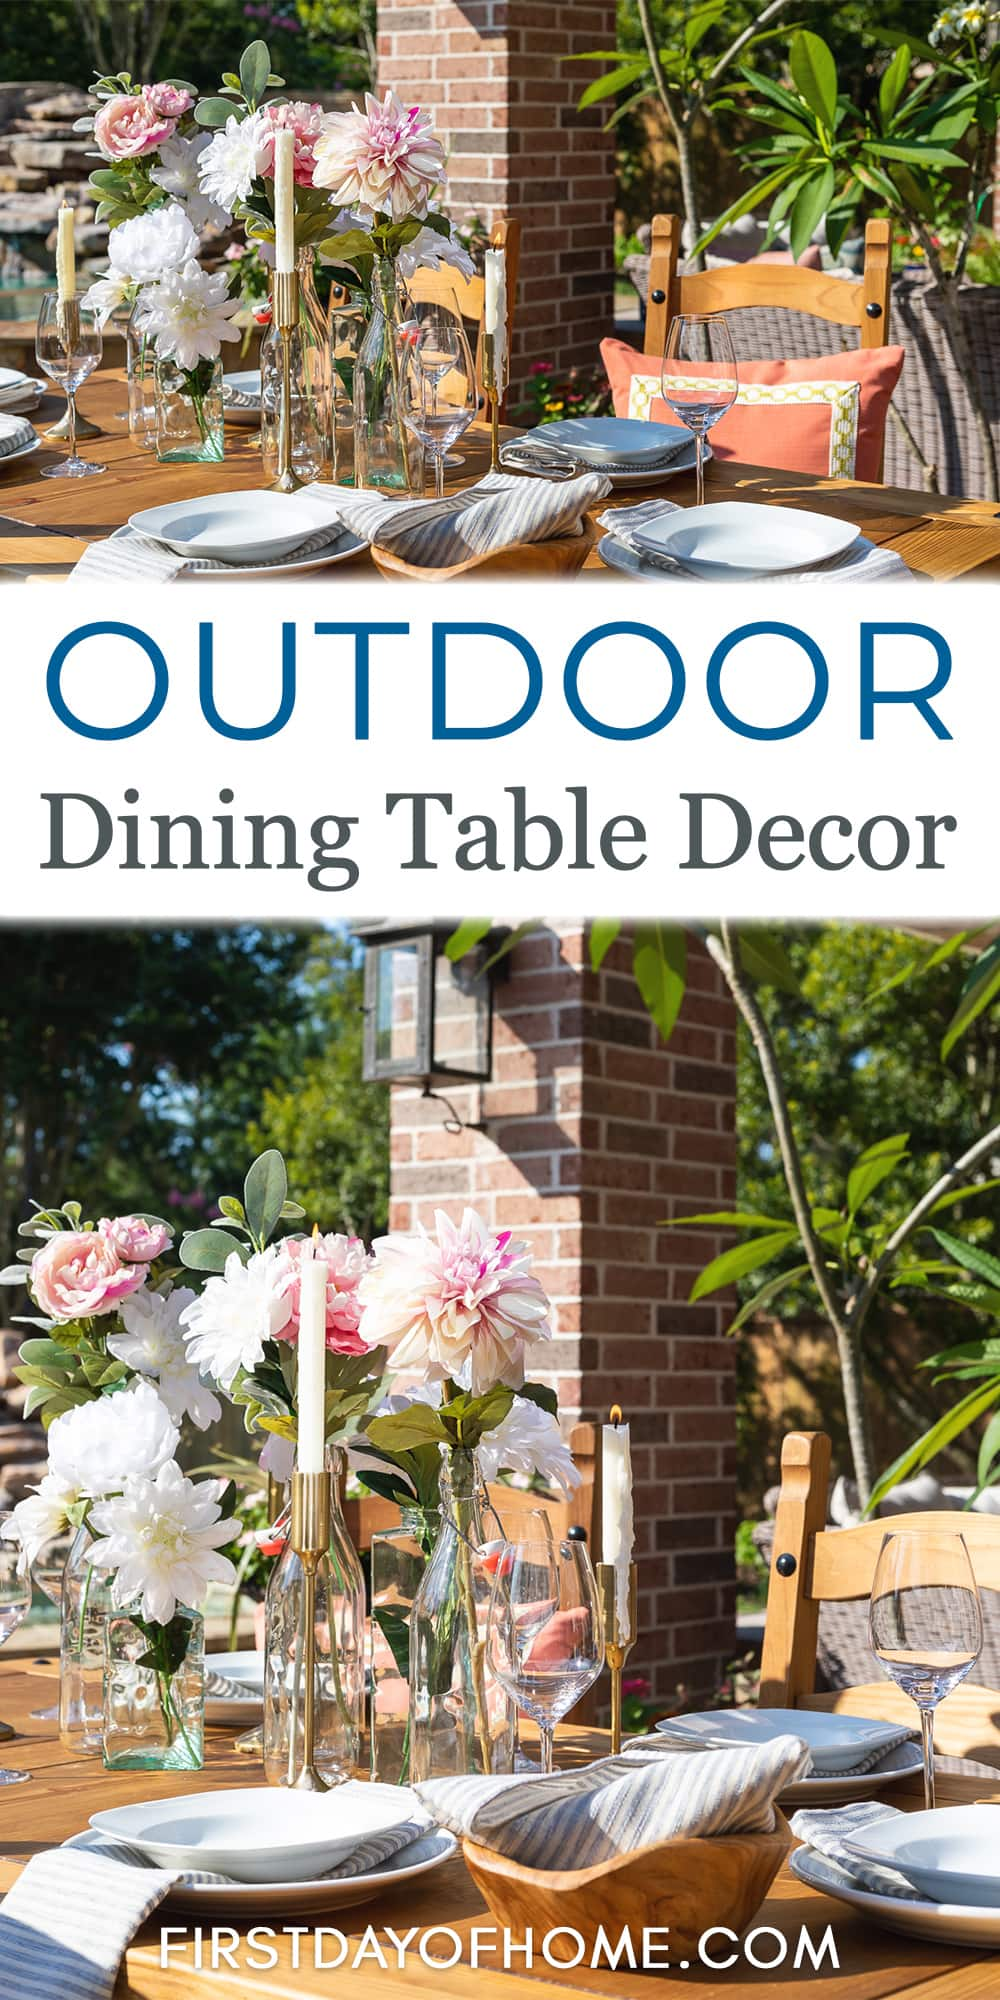 Images of outdoor dining table with floral centerpiece using glass bottles as well as taper candles